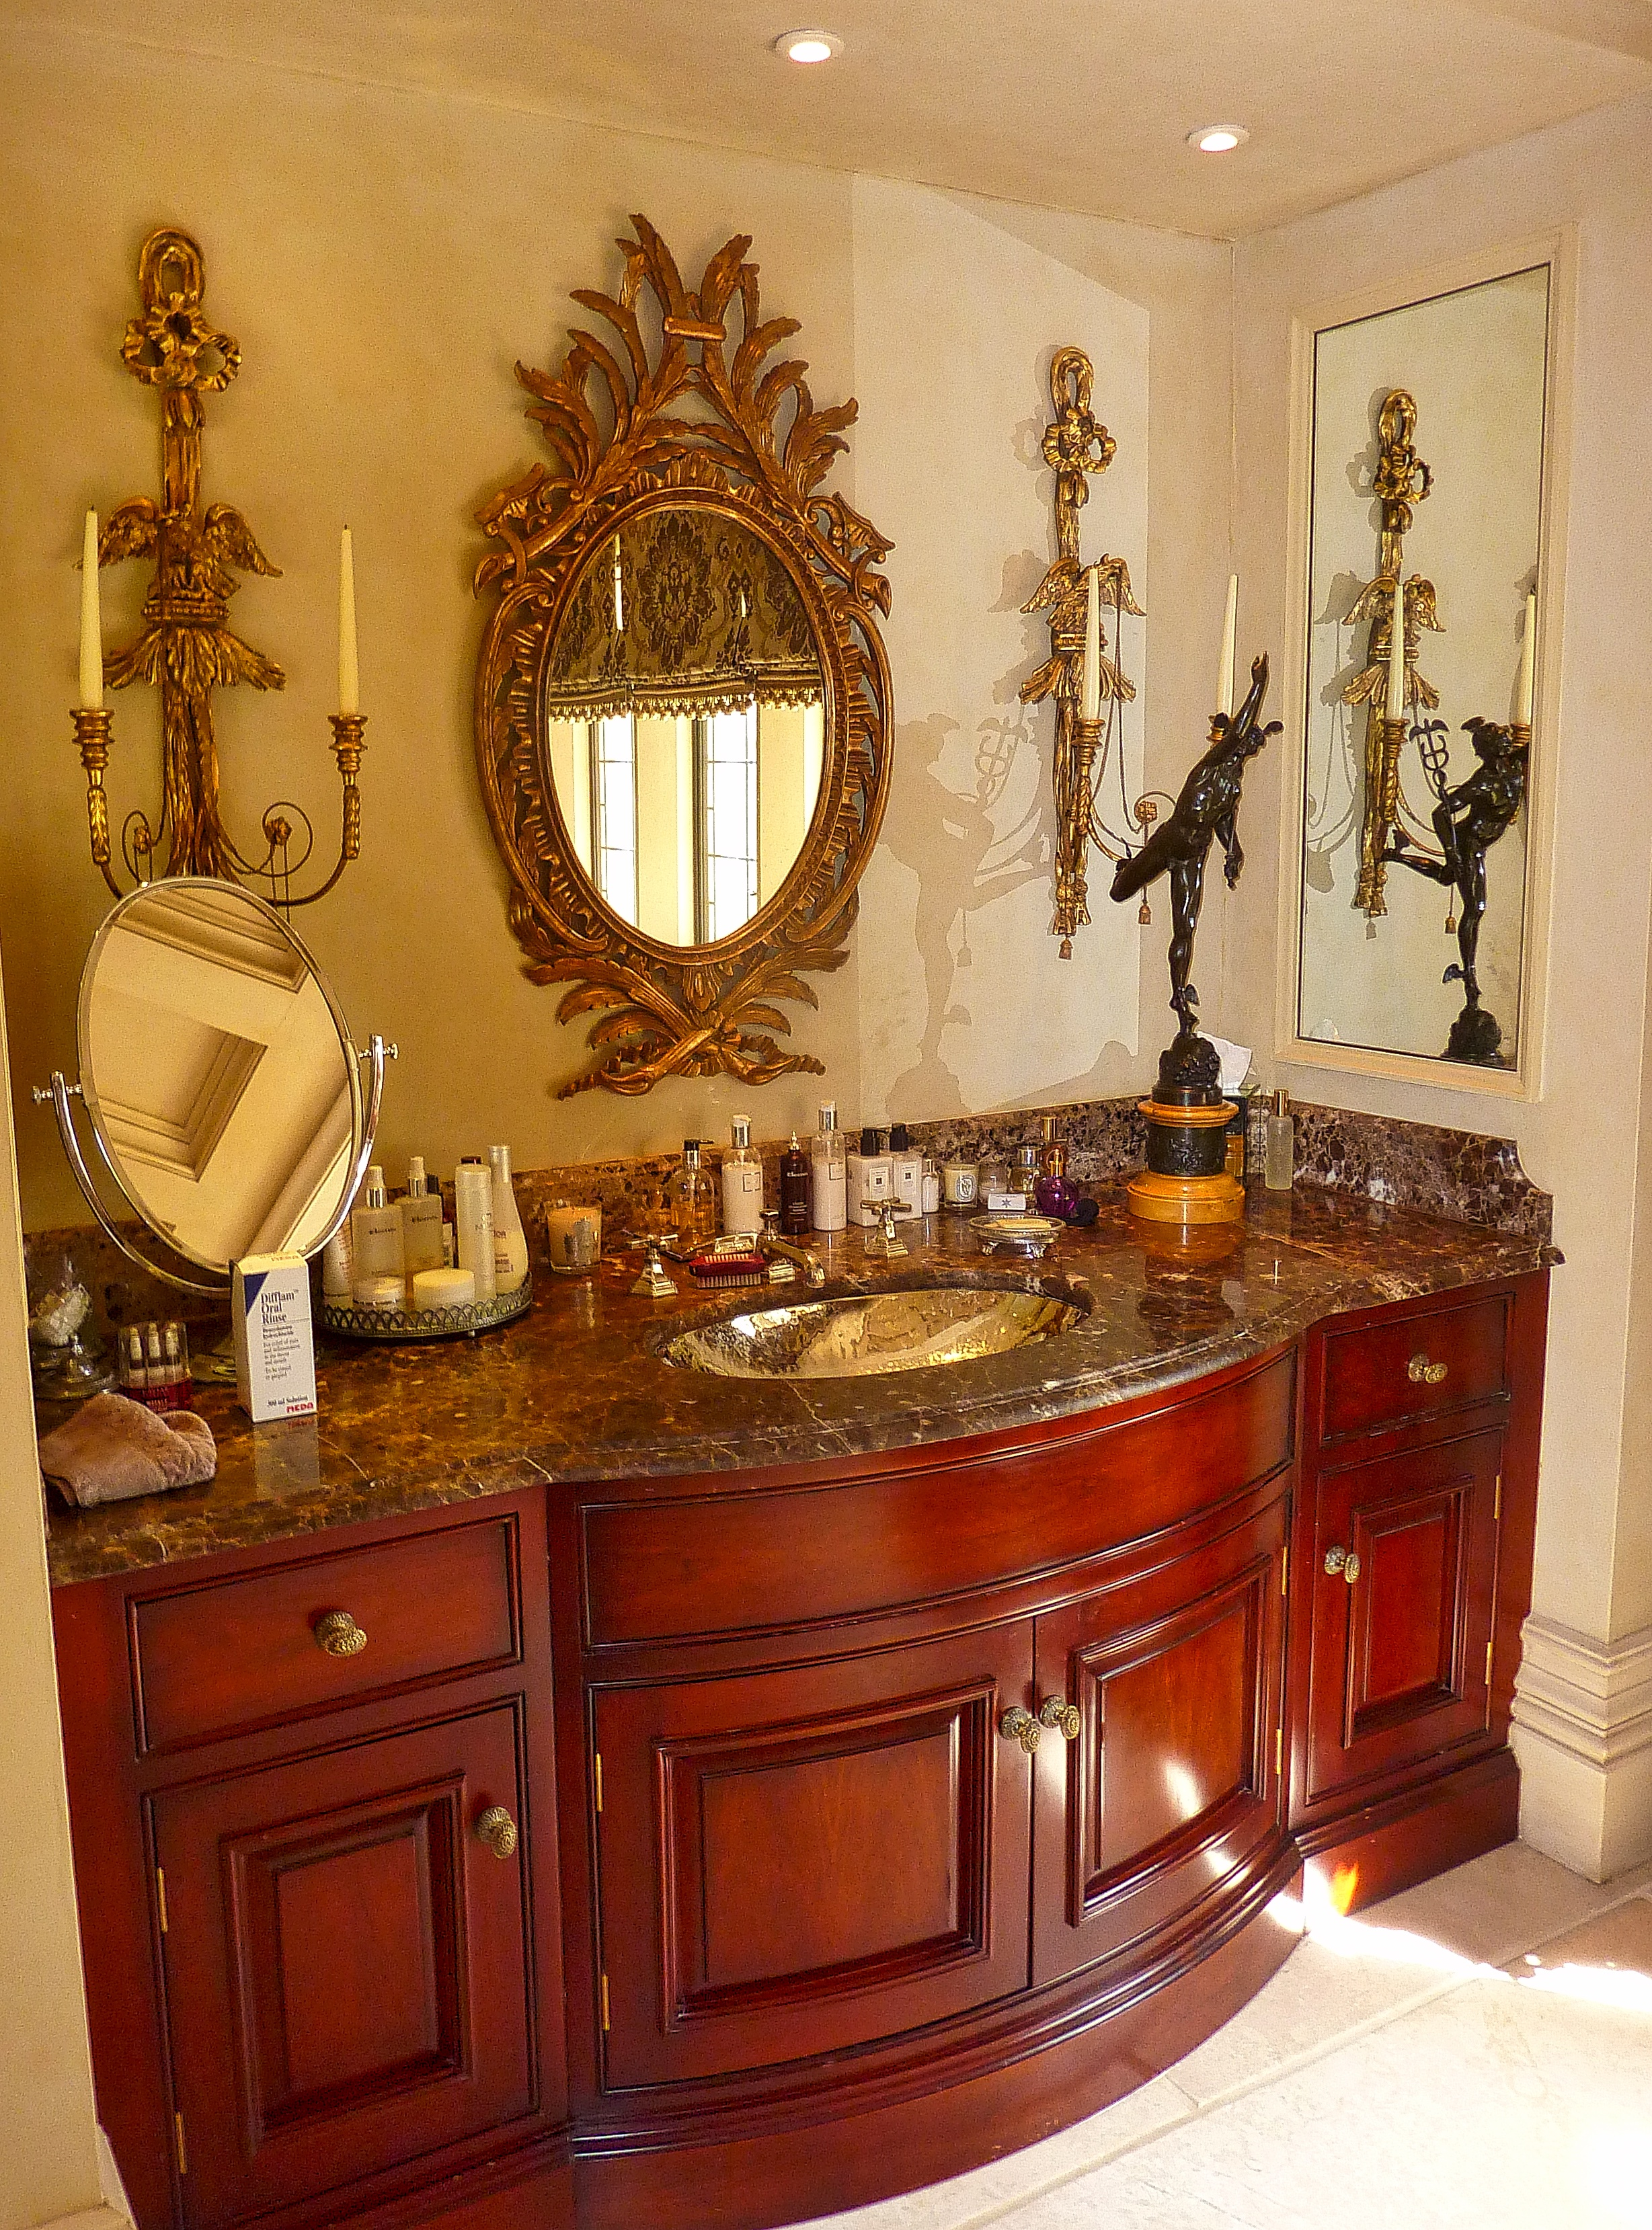 PIC 8 - ANGEL MARTIN - THE MANOR HOUSE - MASTER EN SUITE VANITY.jpeg